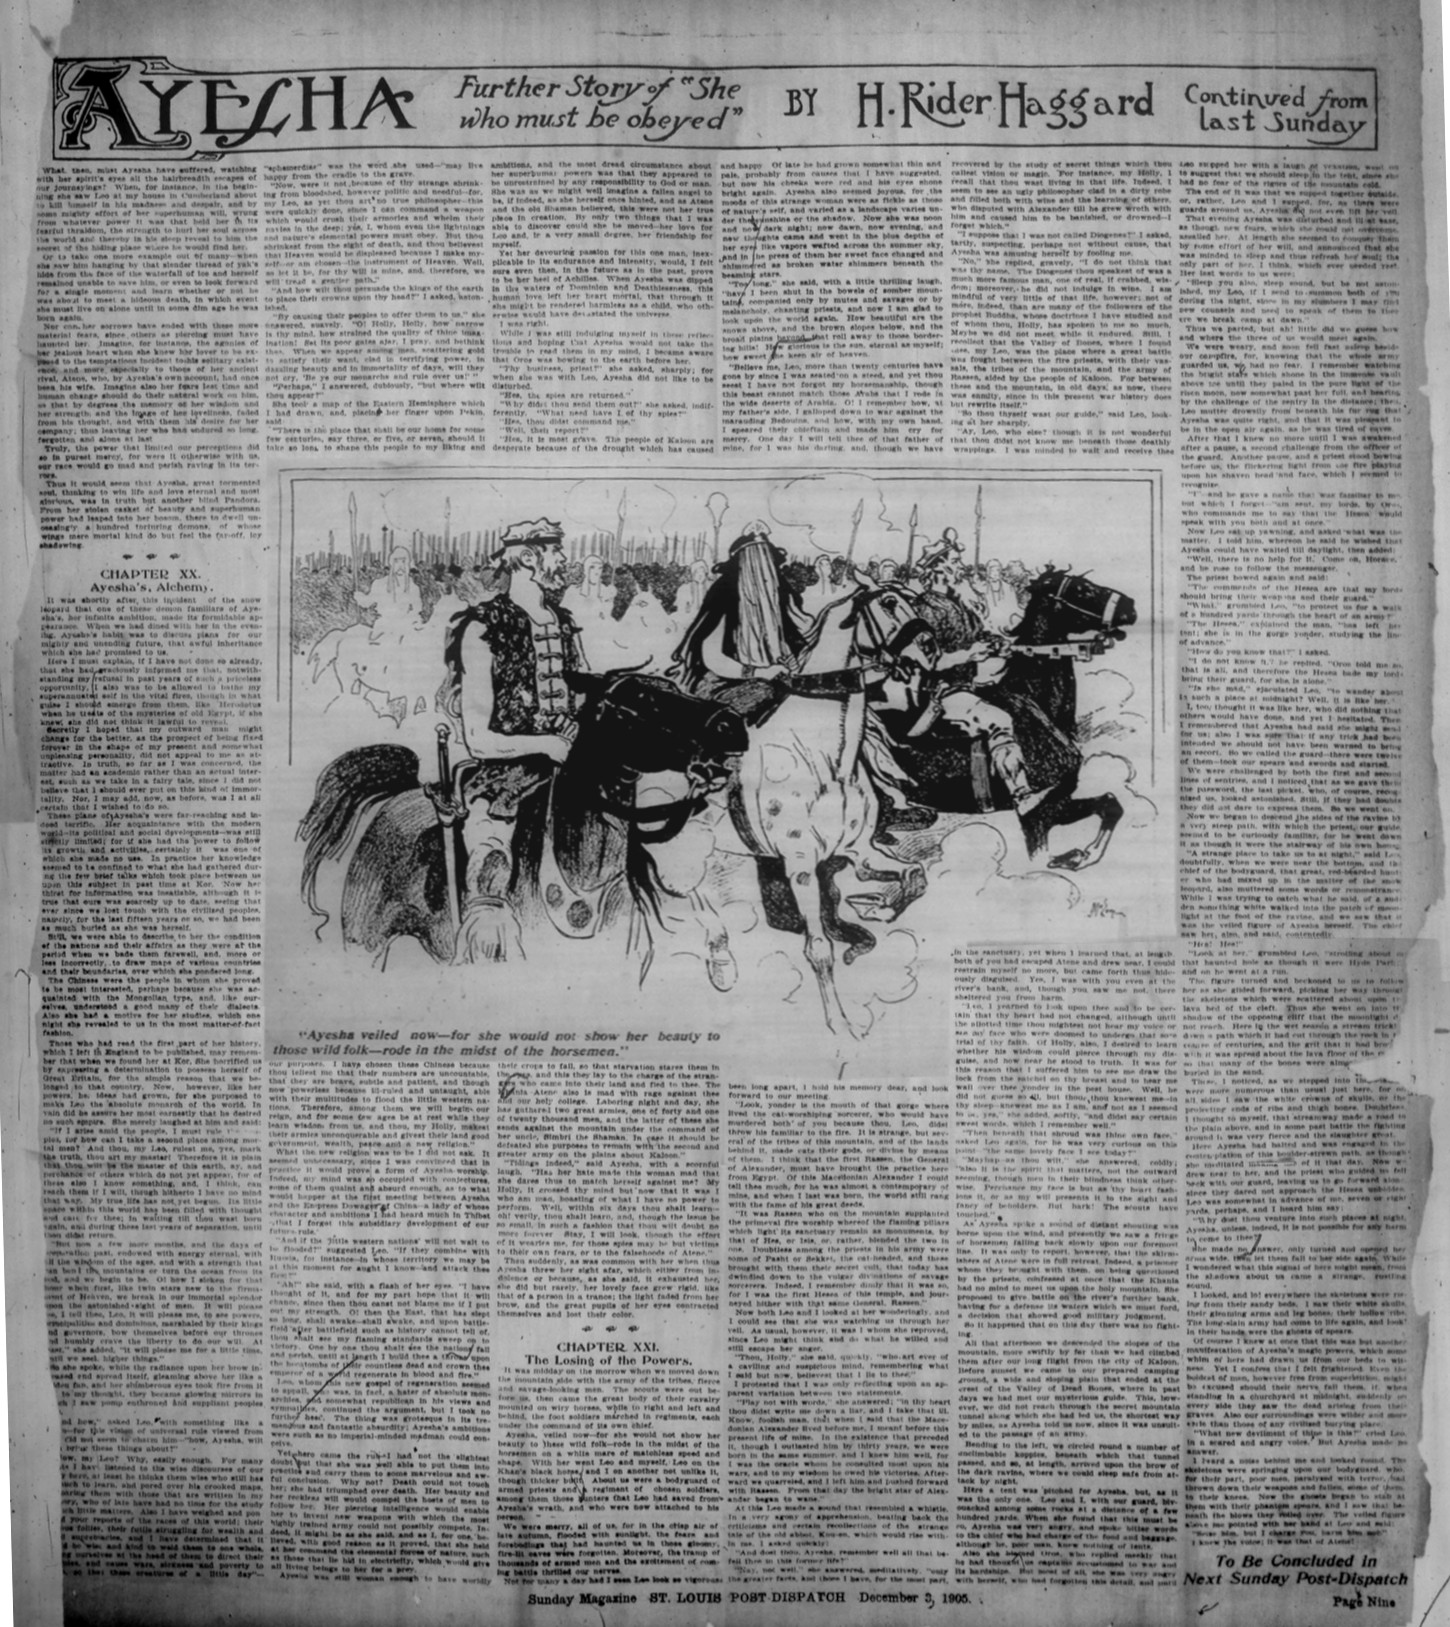 Ayeshaveiledstlouisdispatch3dec1905